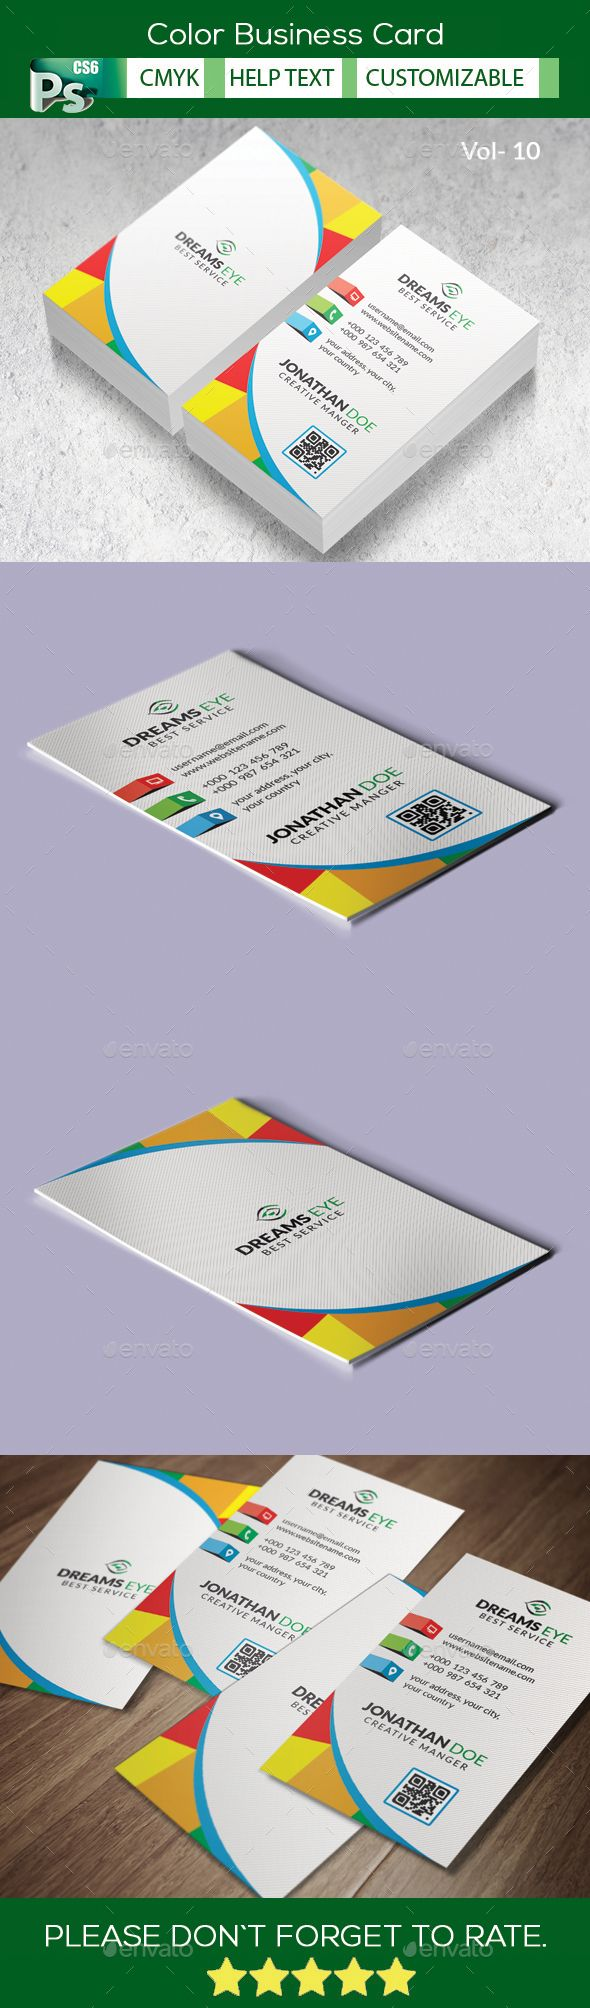 Color Business Card V.10 | Business Card Template Style | Pinterest ...